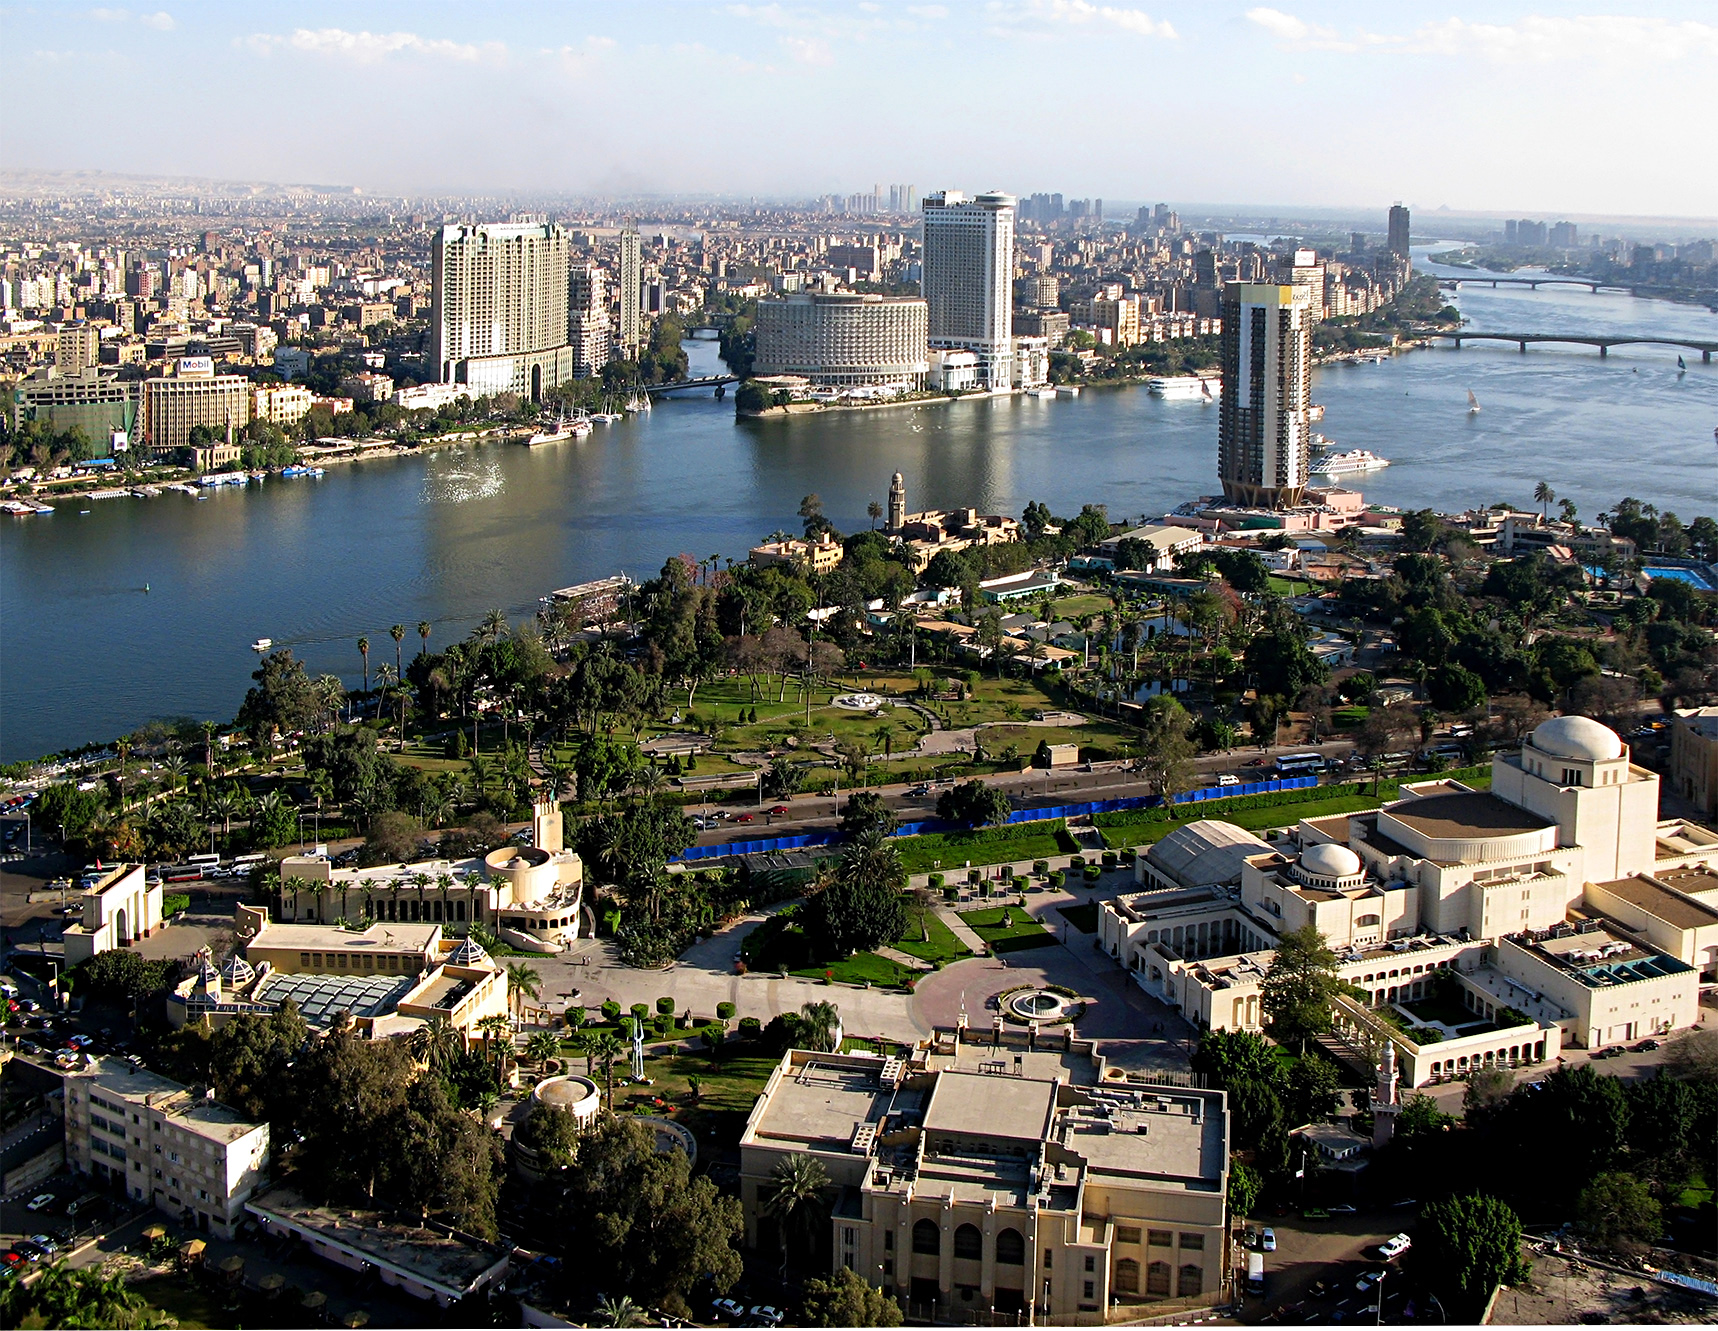 view_from_cairo_tower_31march2007.jpg